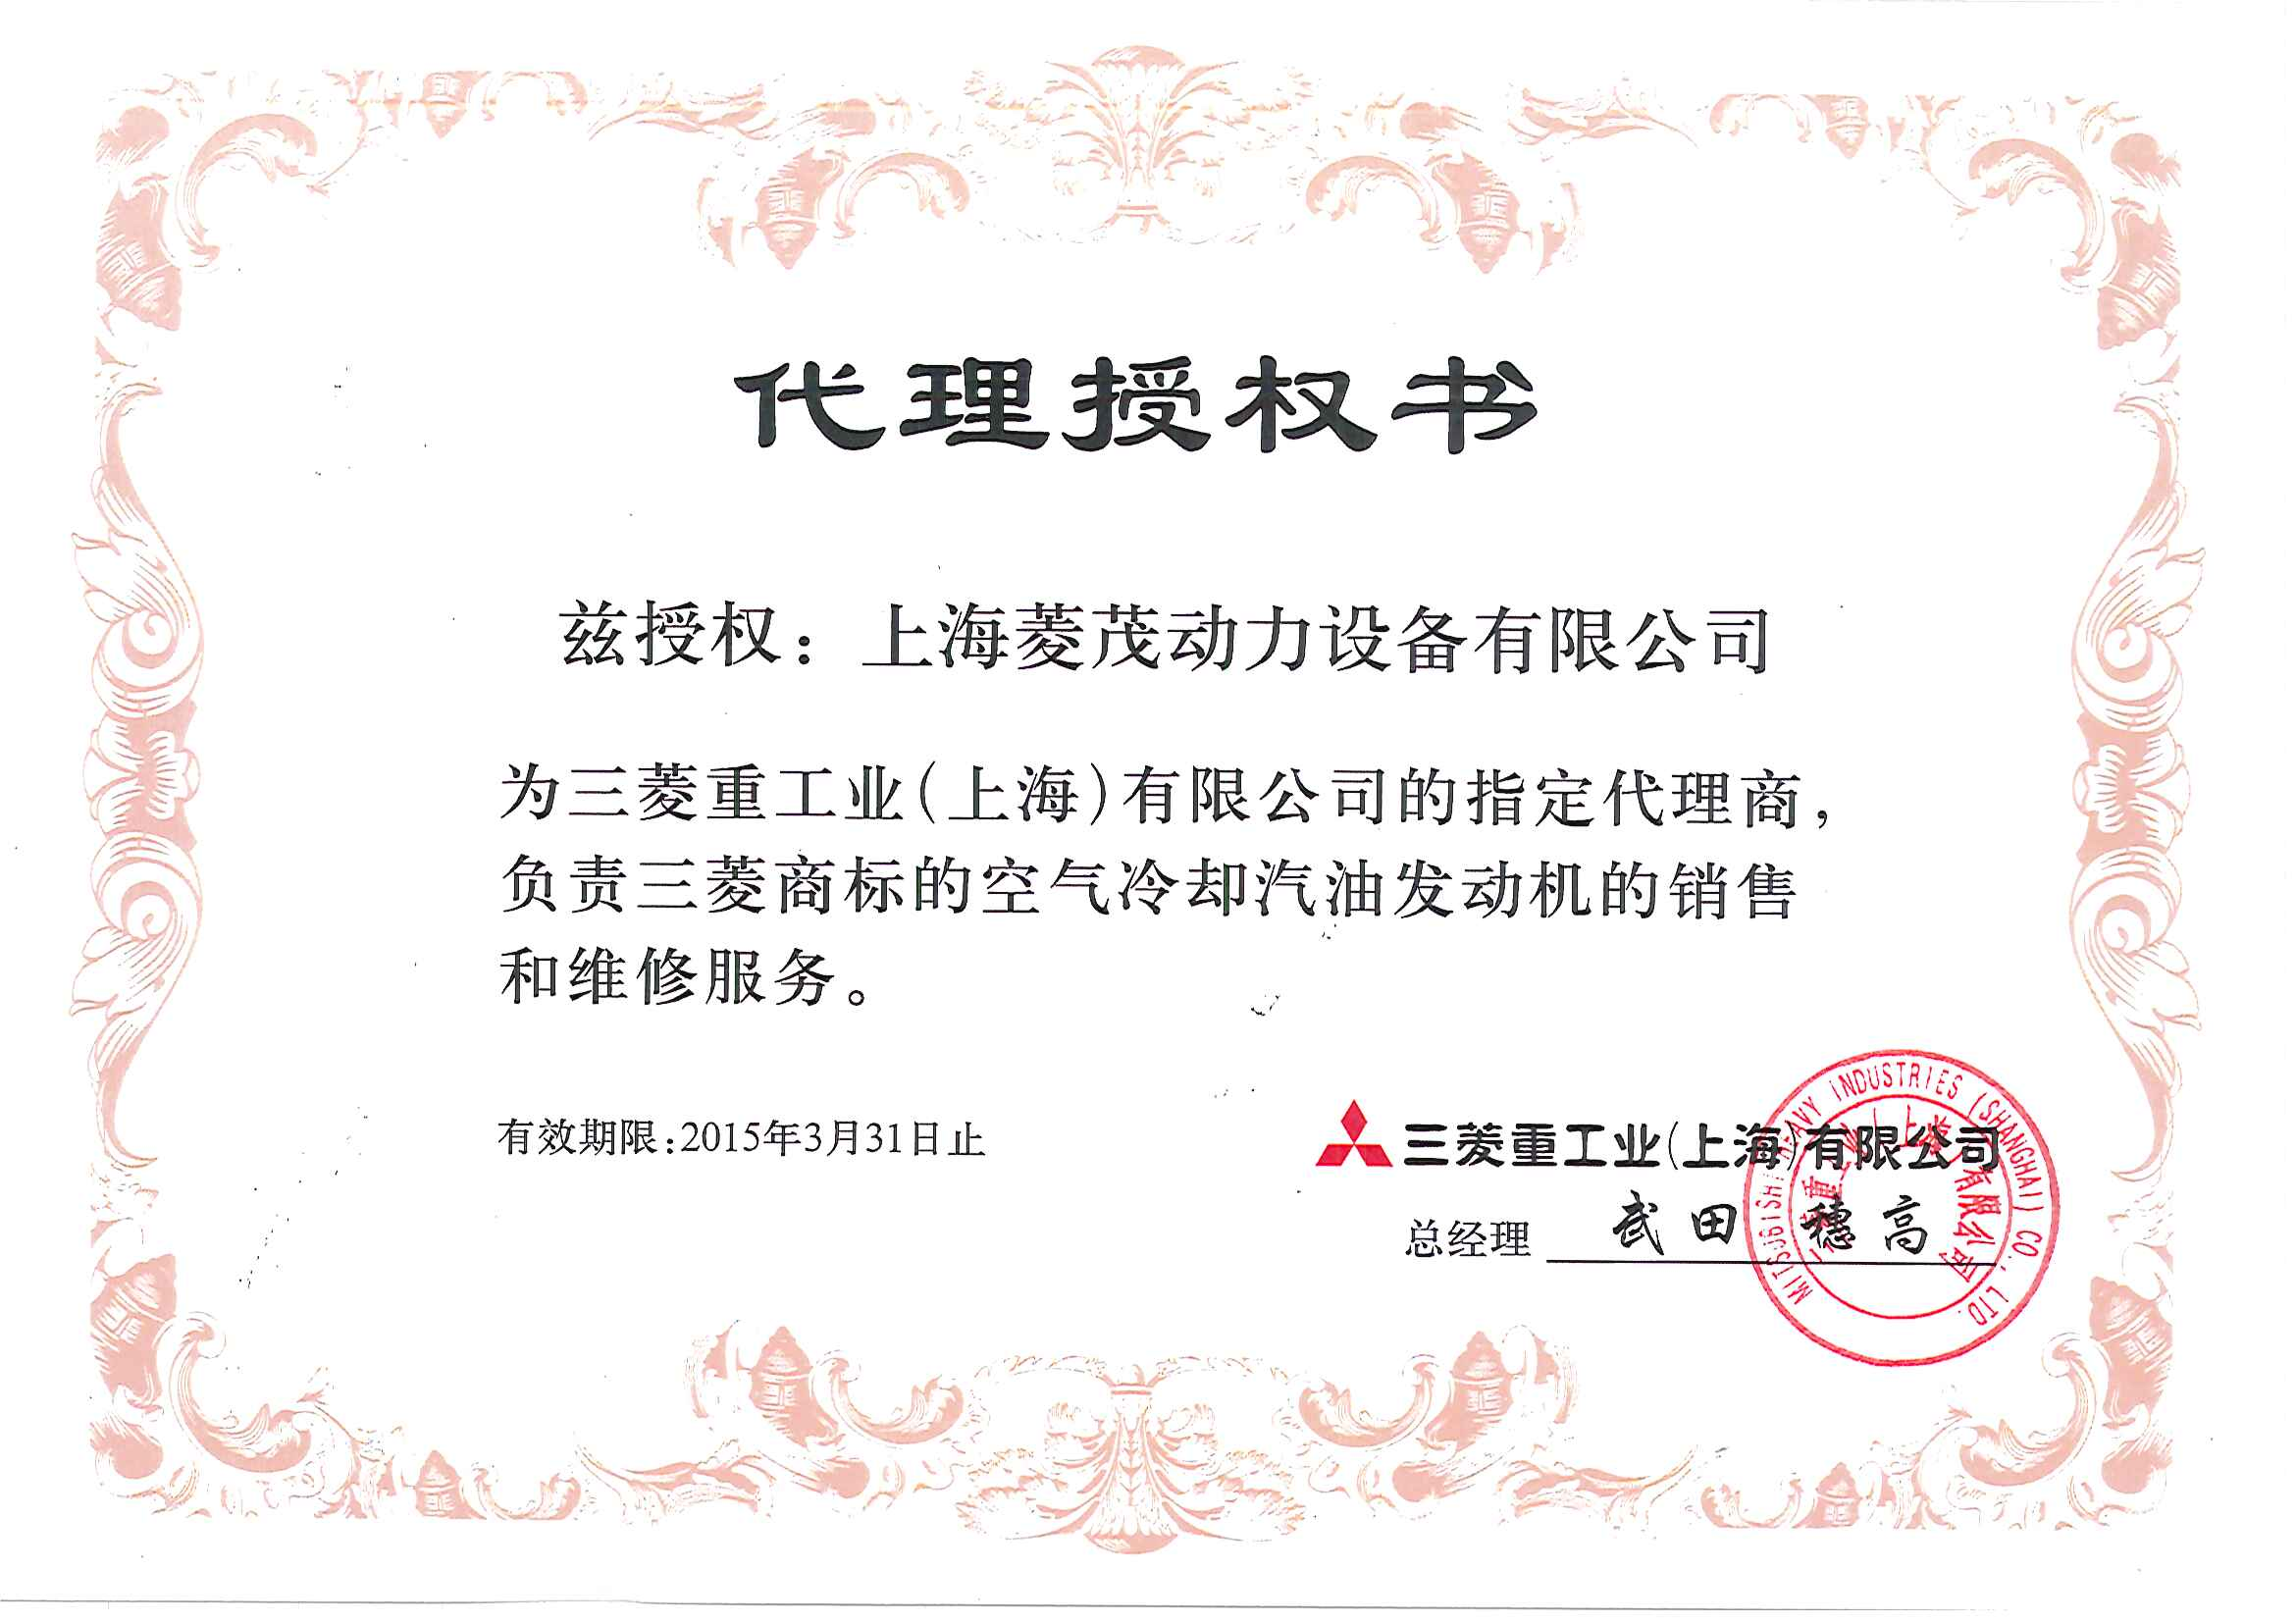 The Exclusive Agent of Mitsubishi Gasoline Engine in China 2014-2015